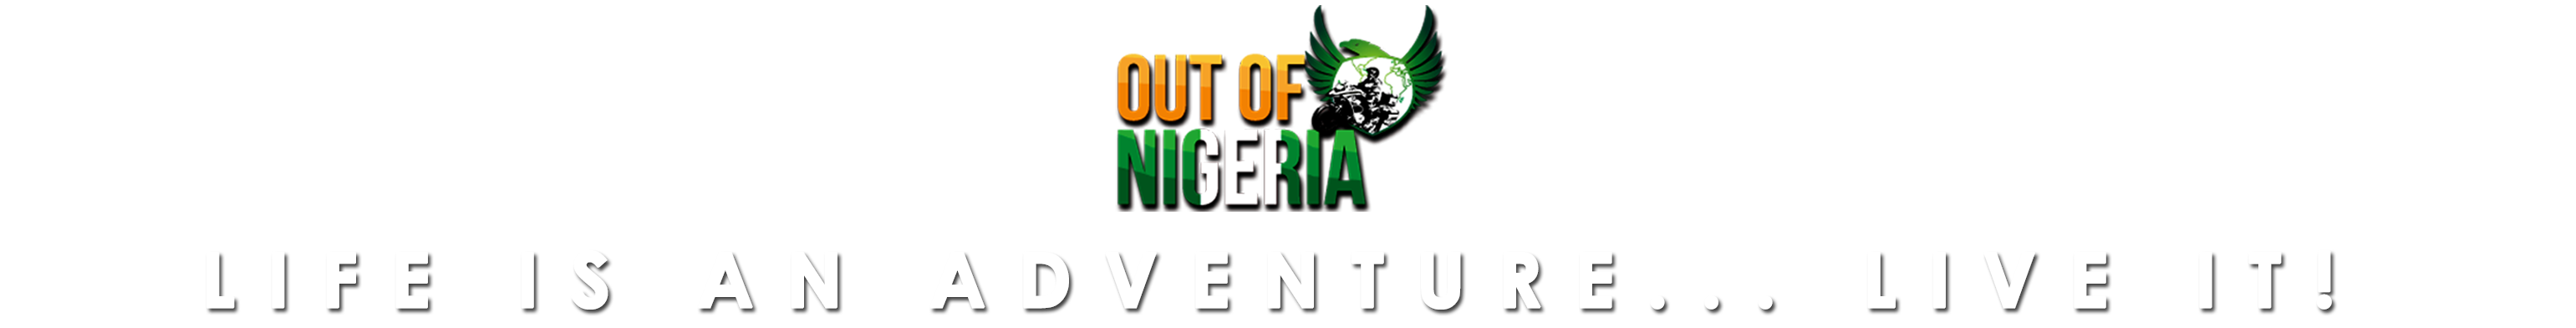 Out of Nigeria Adventure